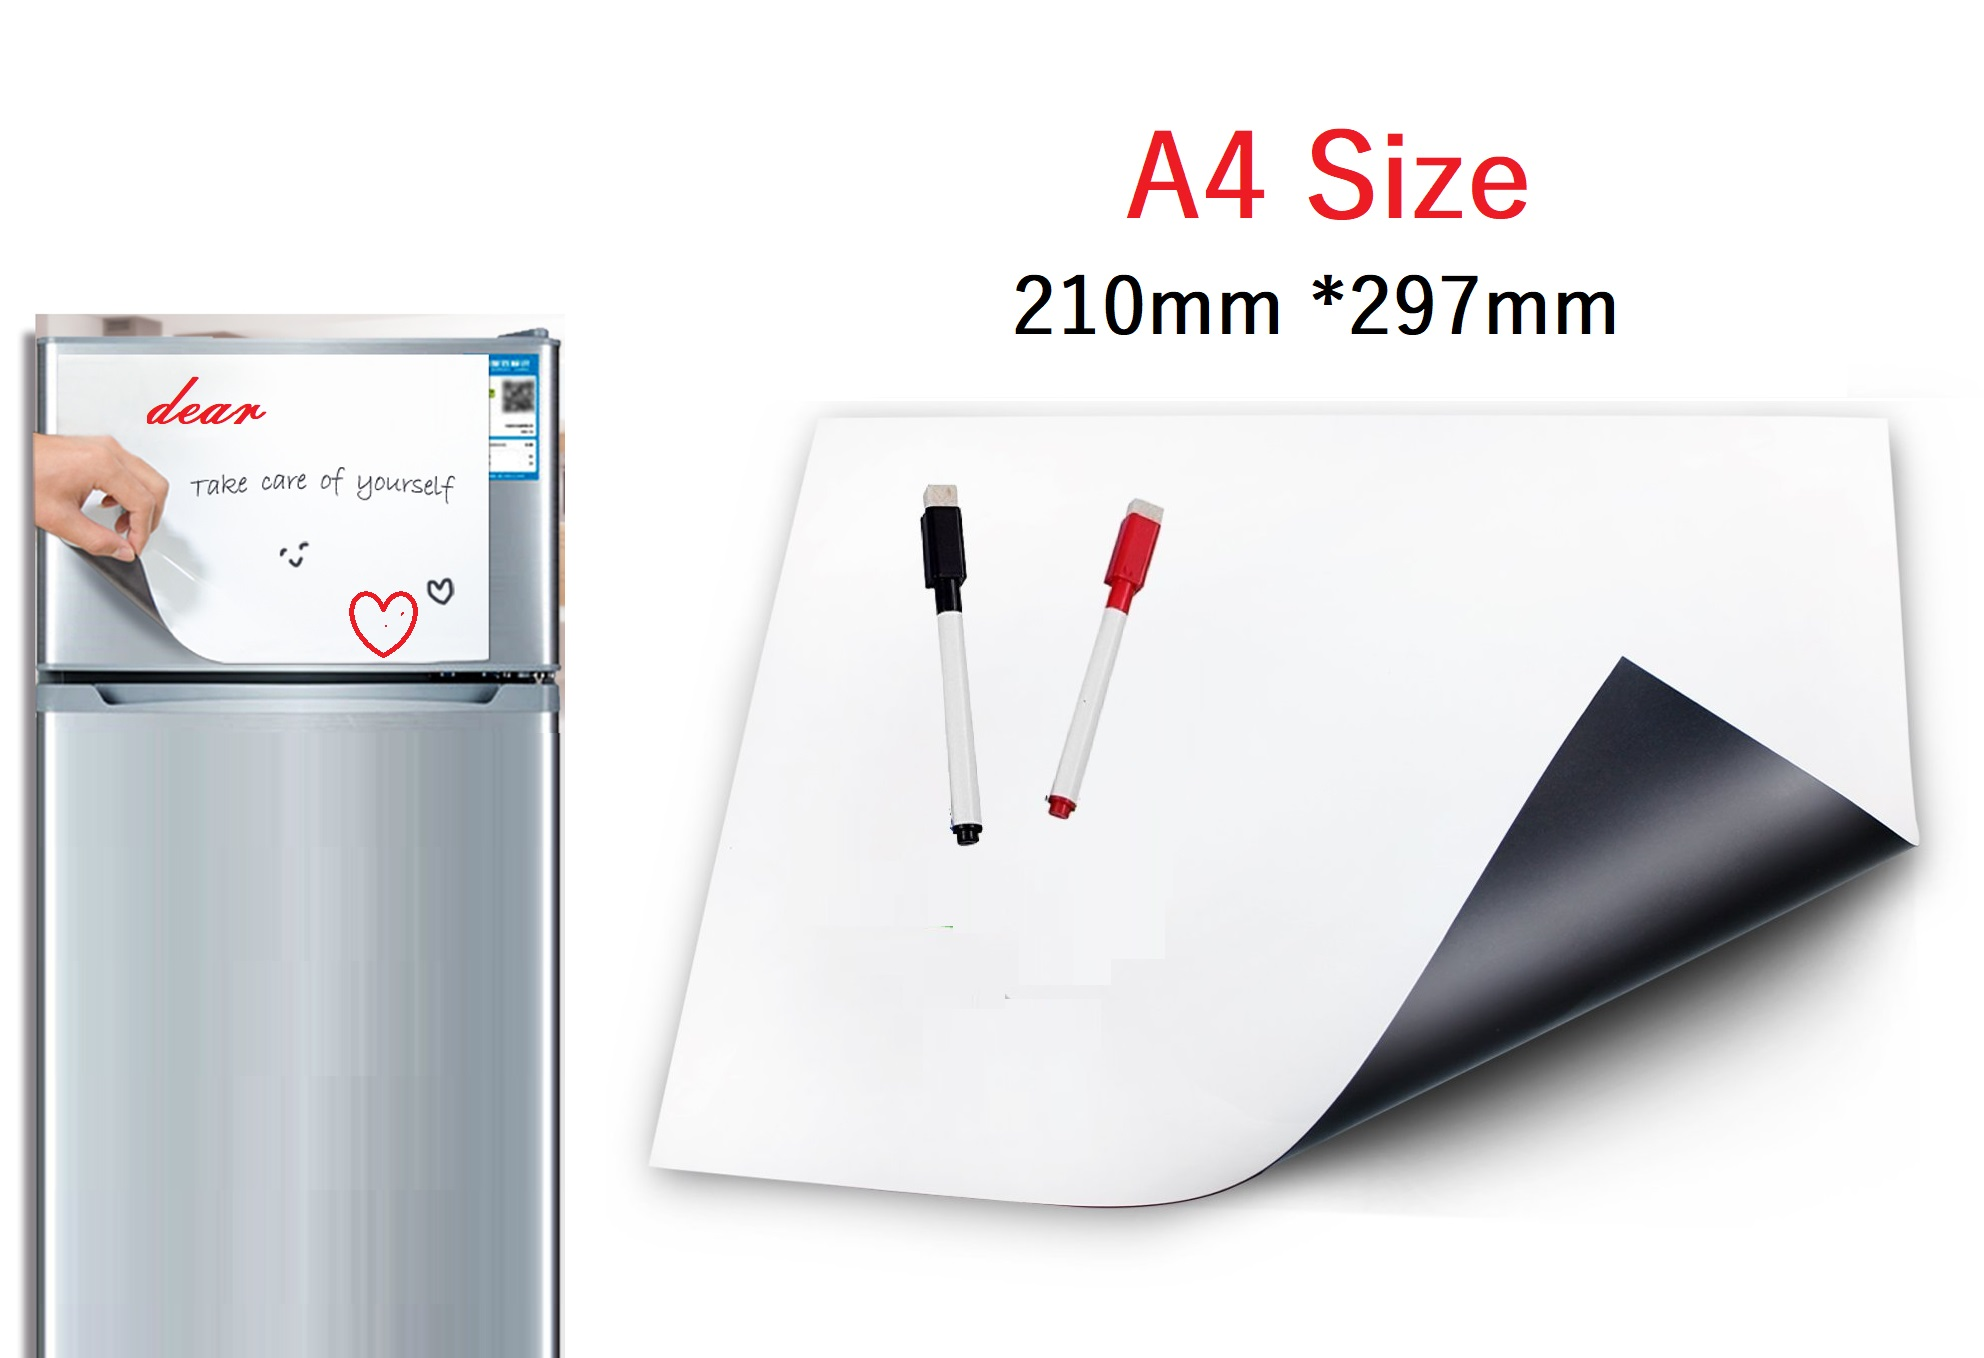 WonYean A4 Size Dry Wipe White Board For Fridge Magnet Magnetic Whiteboard Kitchen Reminder Notepad Message Board 2 Marker Pen